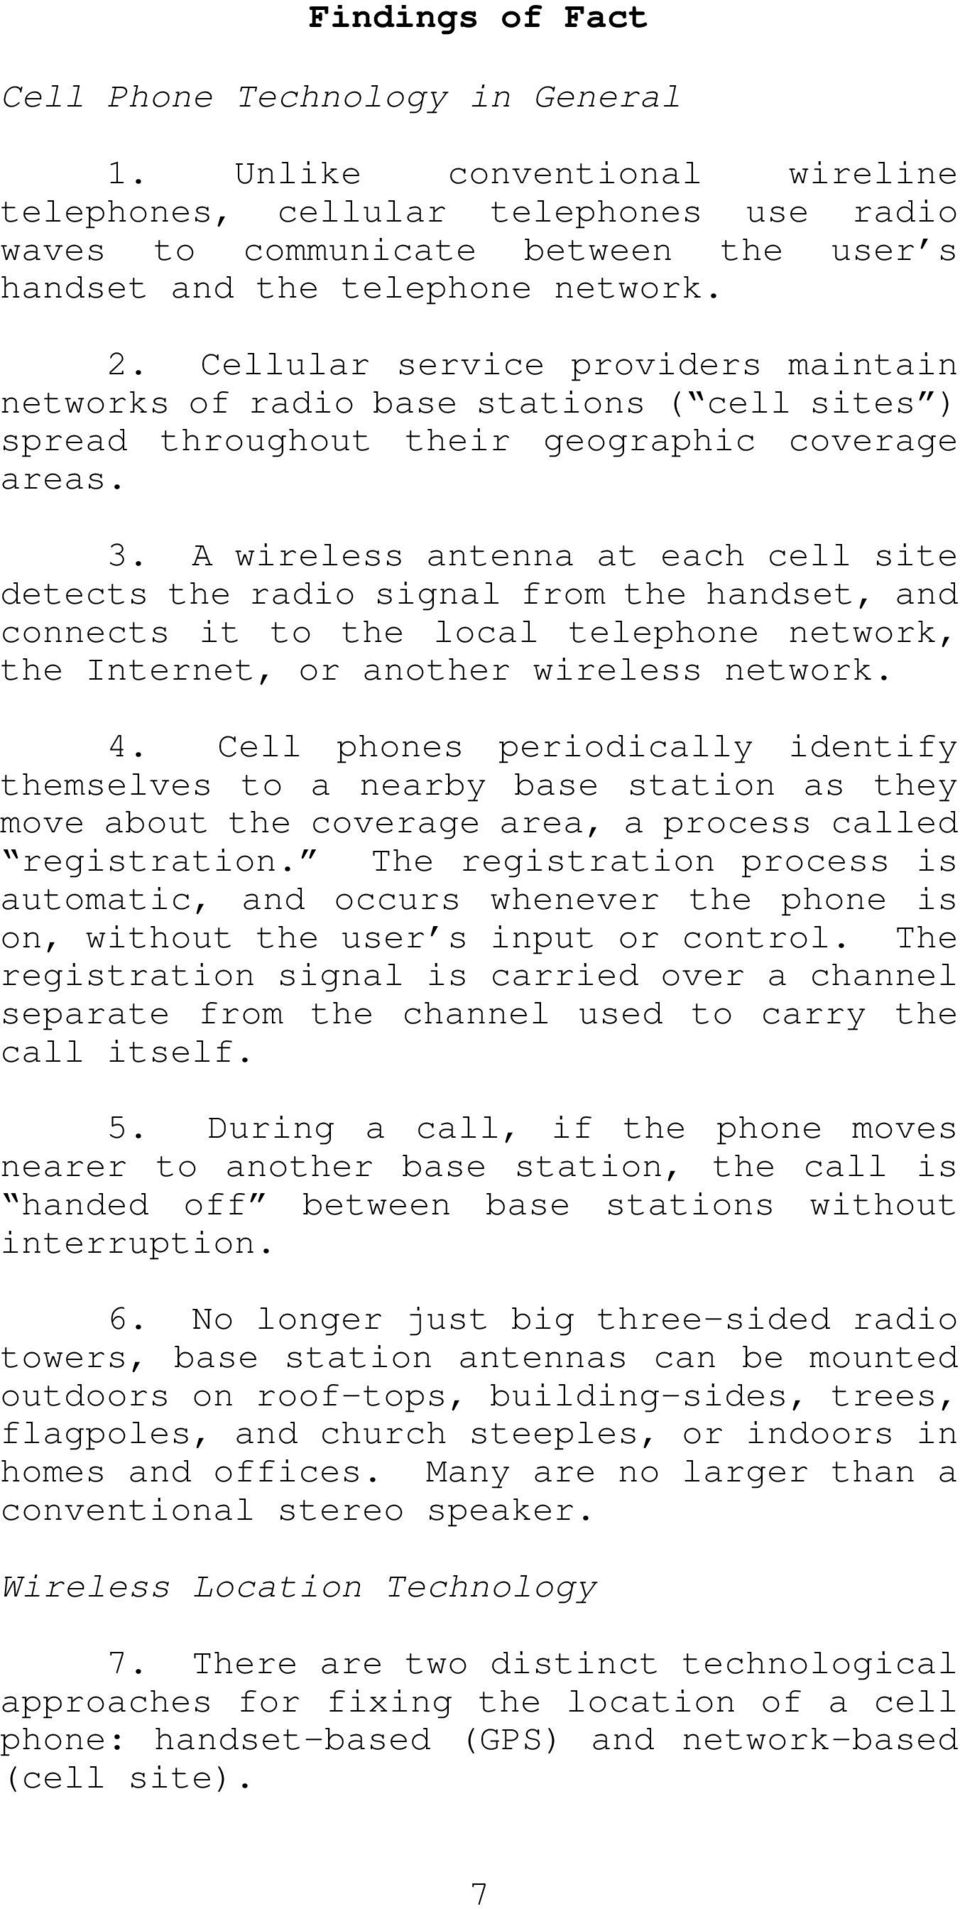 A wireless antenna at each cell site detects the radio signal from the handset, and connects it to the local telephone network, the Internet, or another wireless network. 4.